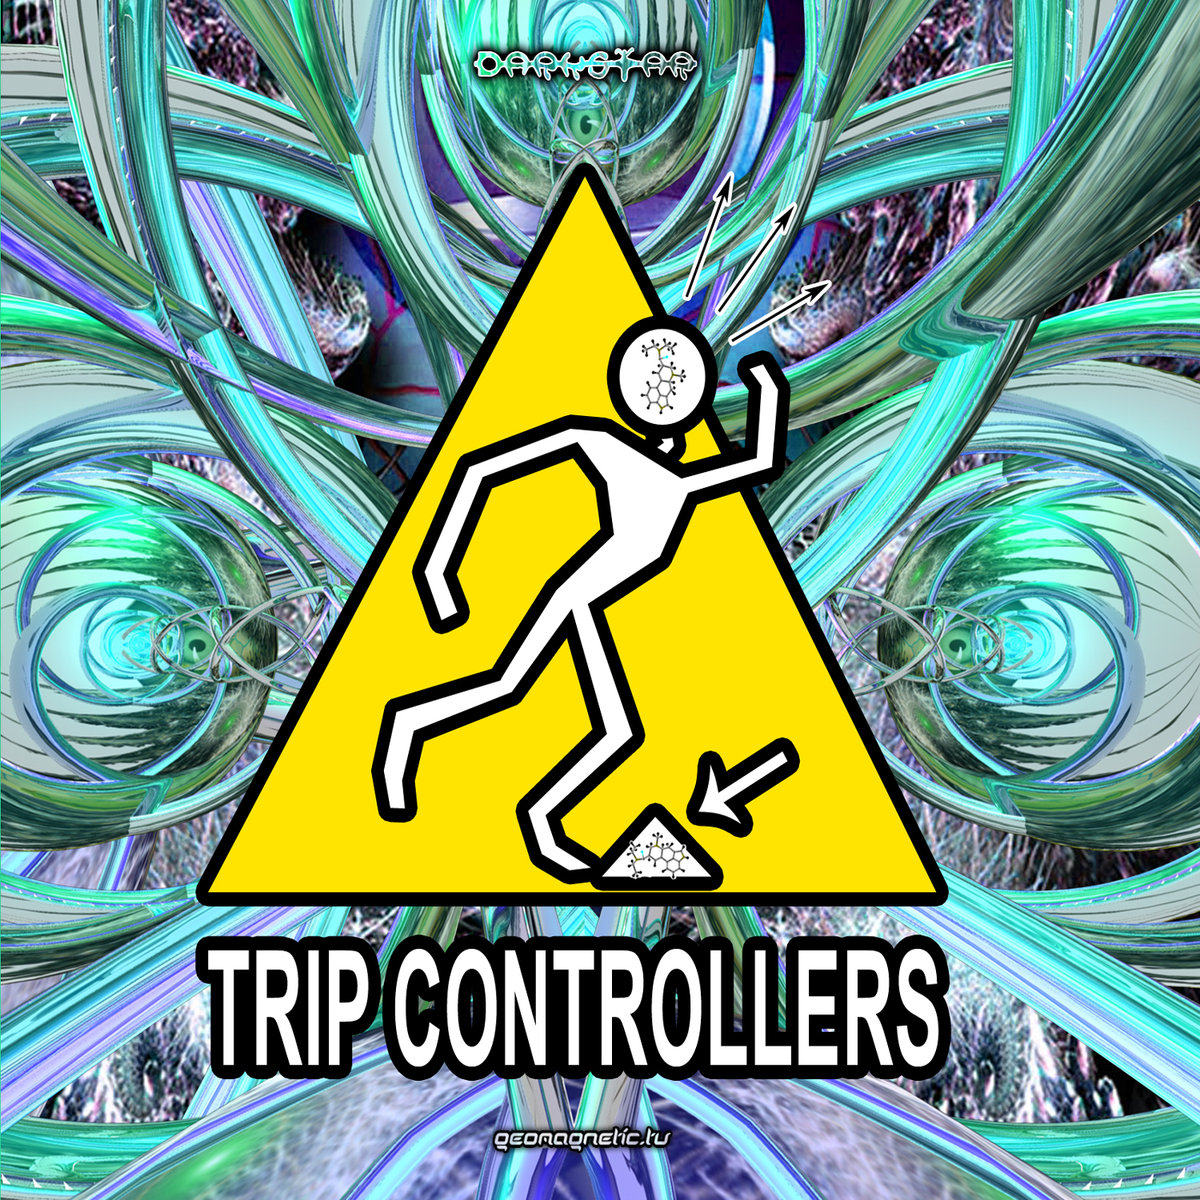 Tsabeat vs. Spazzz - Electrical Activity @ 'Various Artists - Trip Controllers (Compiled by Dr. Spook)' album (electronic, goa)